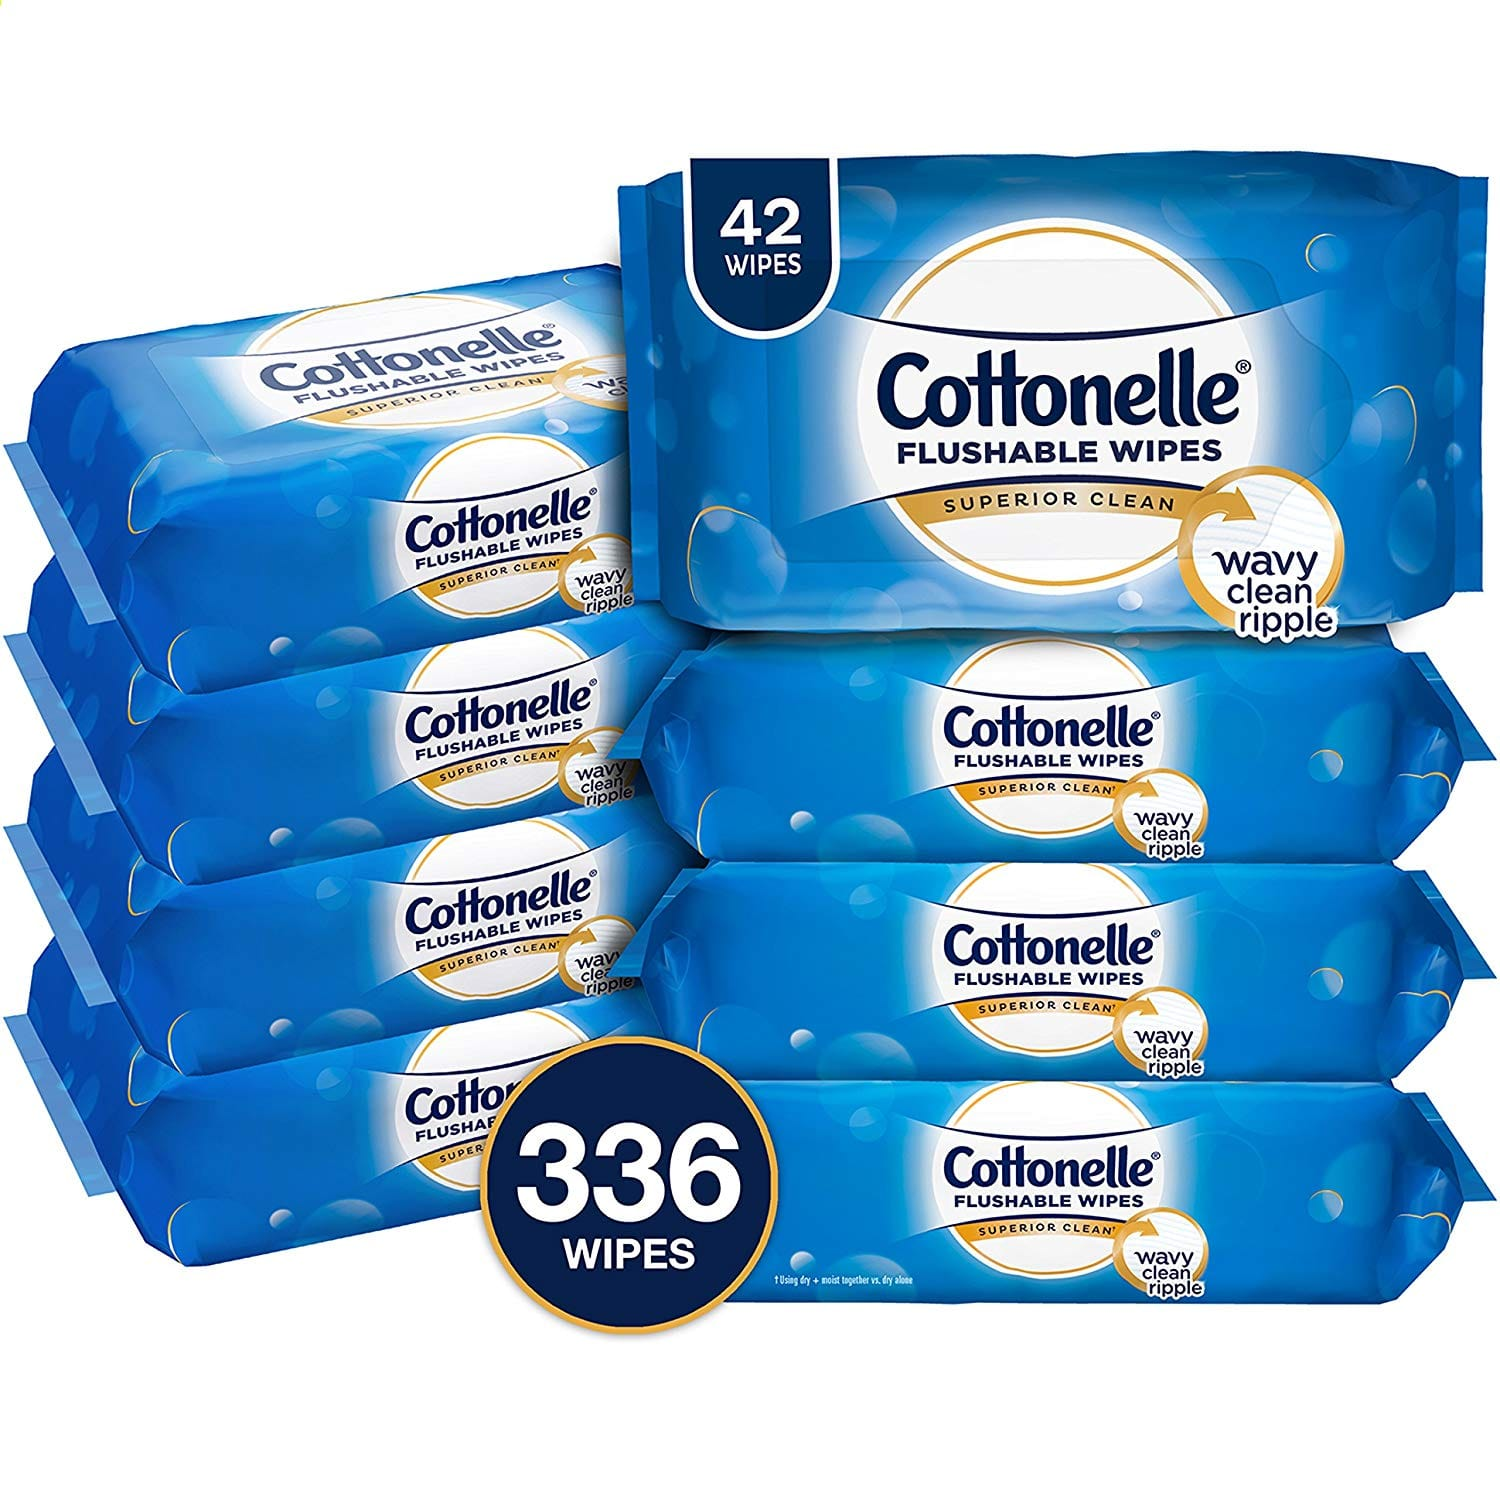 336-Ct Cottonelle FreshCare Flushable Wipes (Alcohol Free) $11.25 w/ S&S + Free S&H